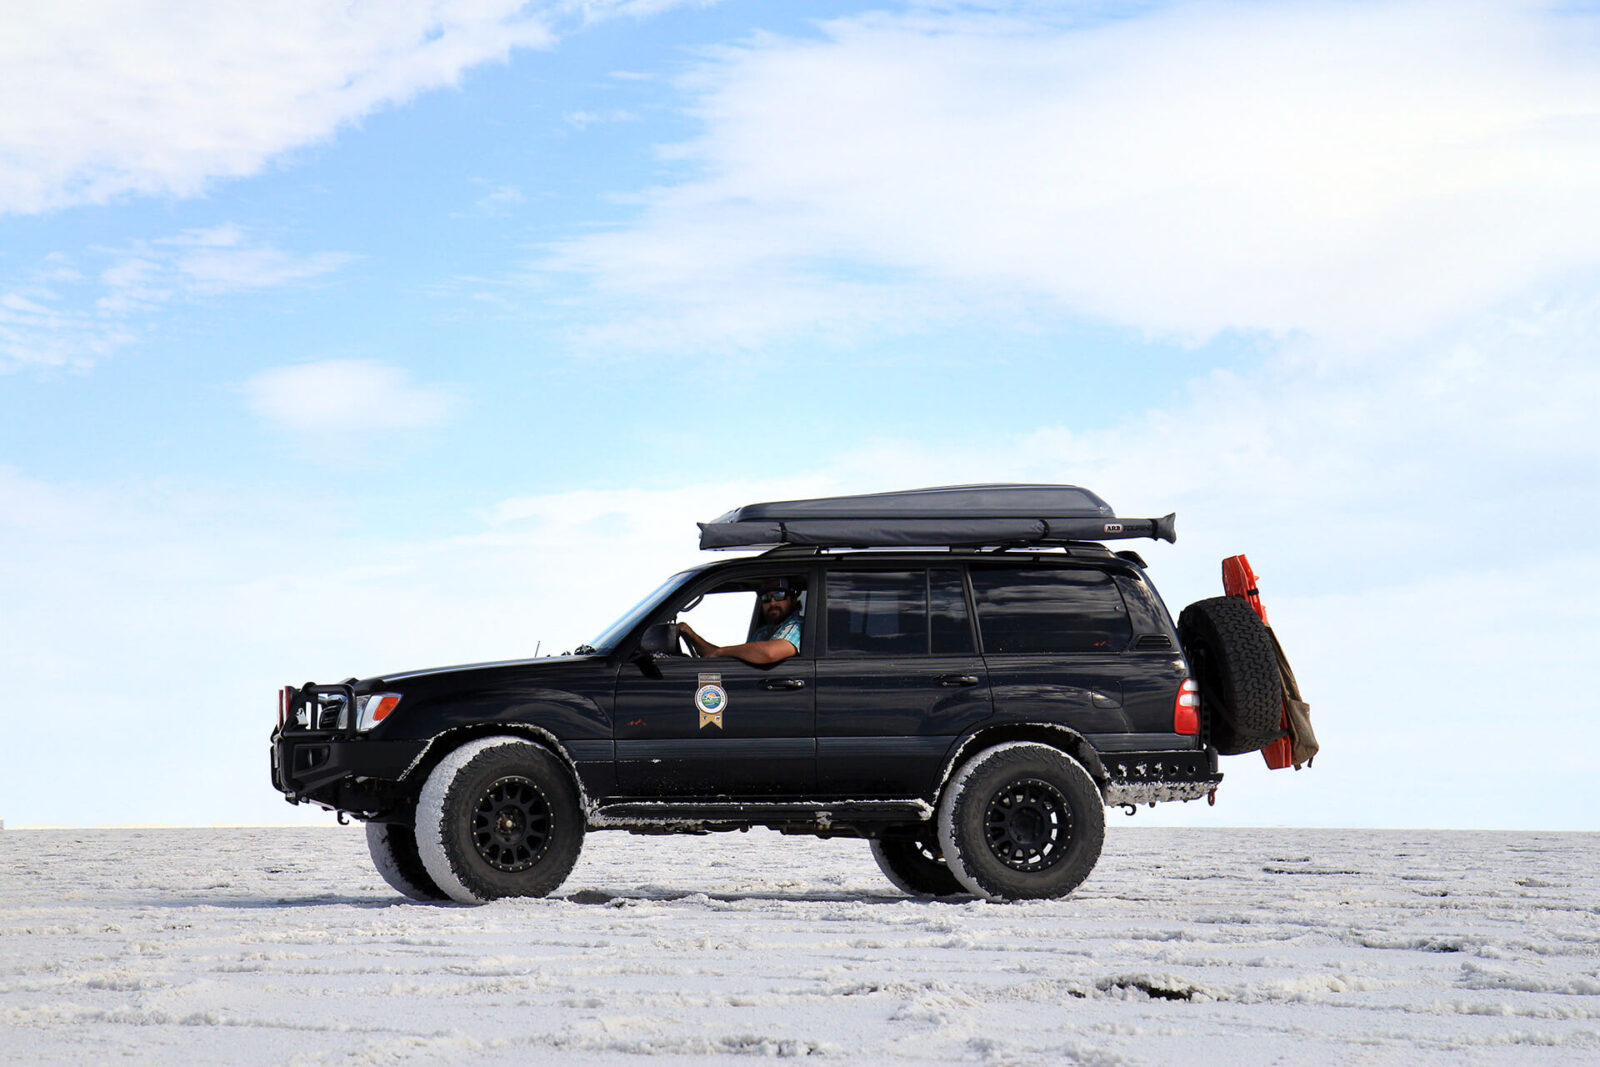 Lifted Toyota Land Cruiser 100 on 35s